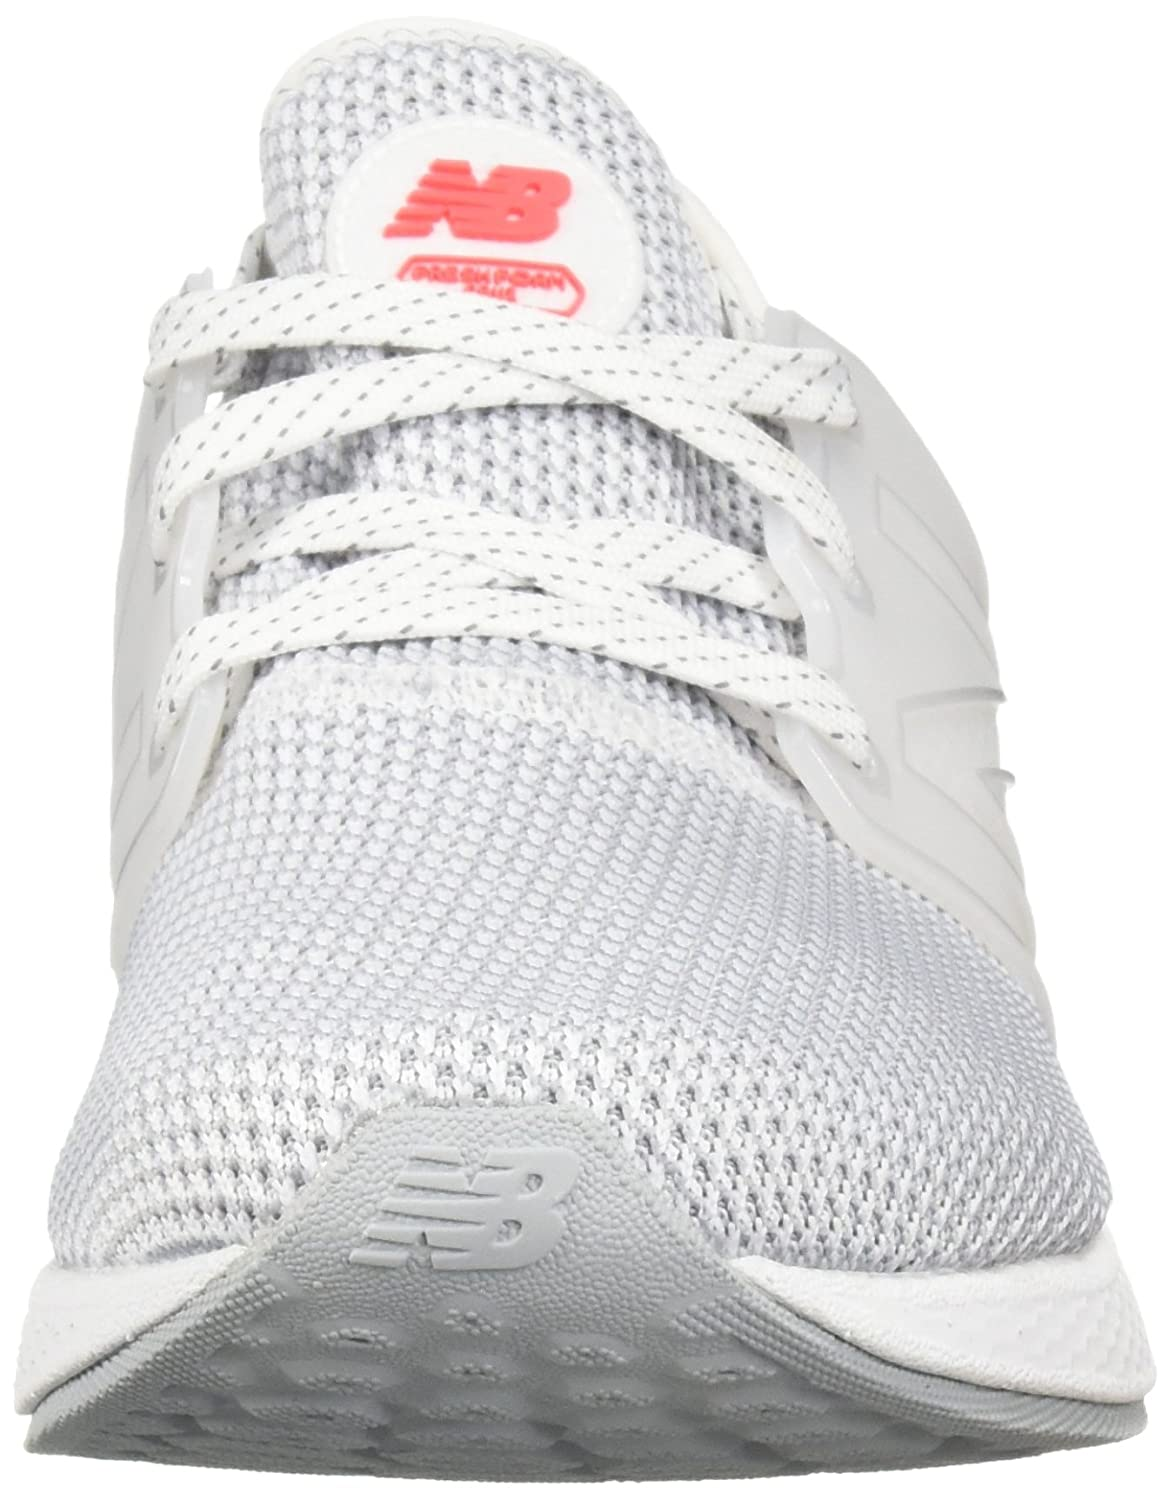 New Balance Women's Fresh Foam Cruz V1 Running Shoe B07514FLJK 10.5 D US|White/White